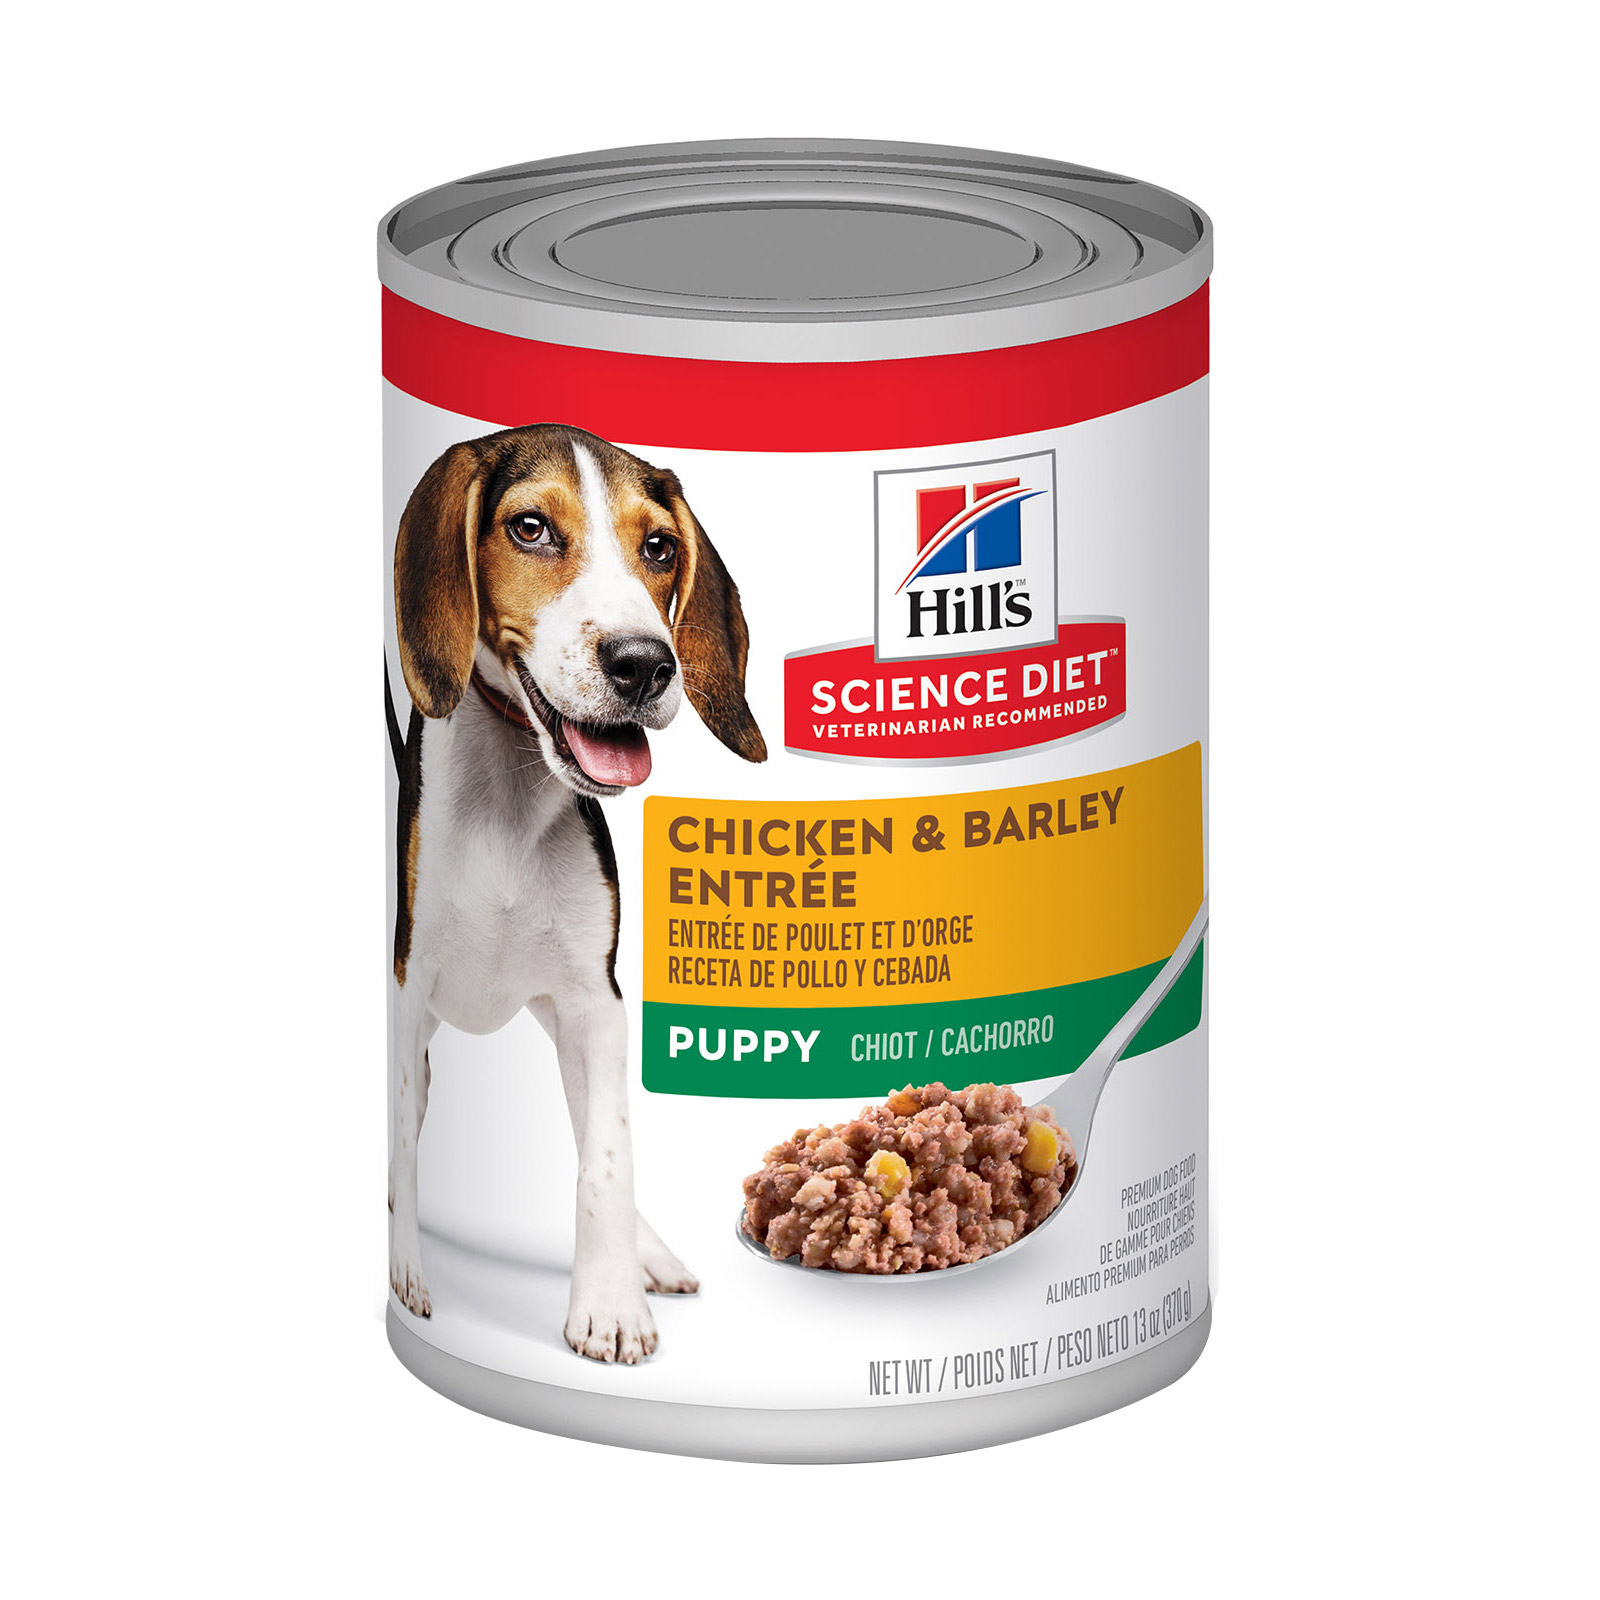 Hill's Science Diet Puppy Chicken & Barley Entrée Canned Dog Food 370 Gm